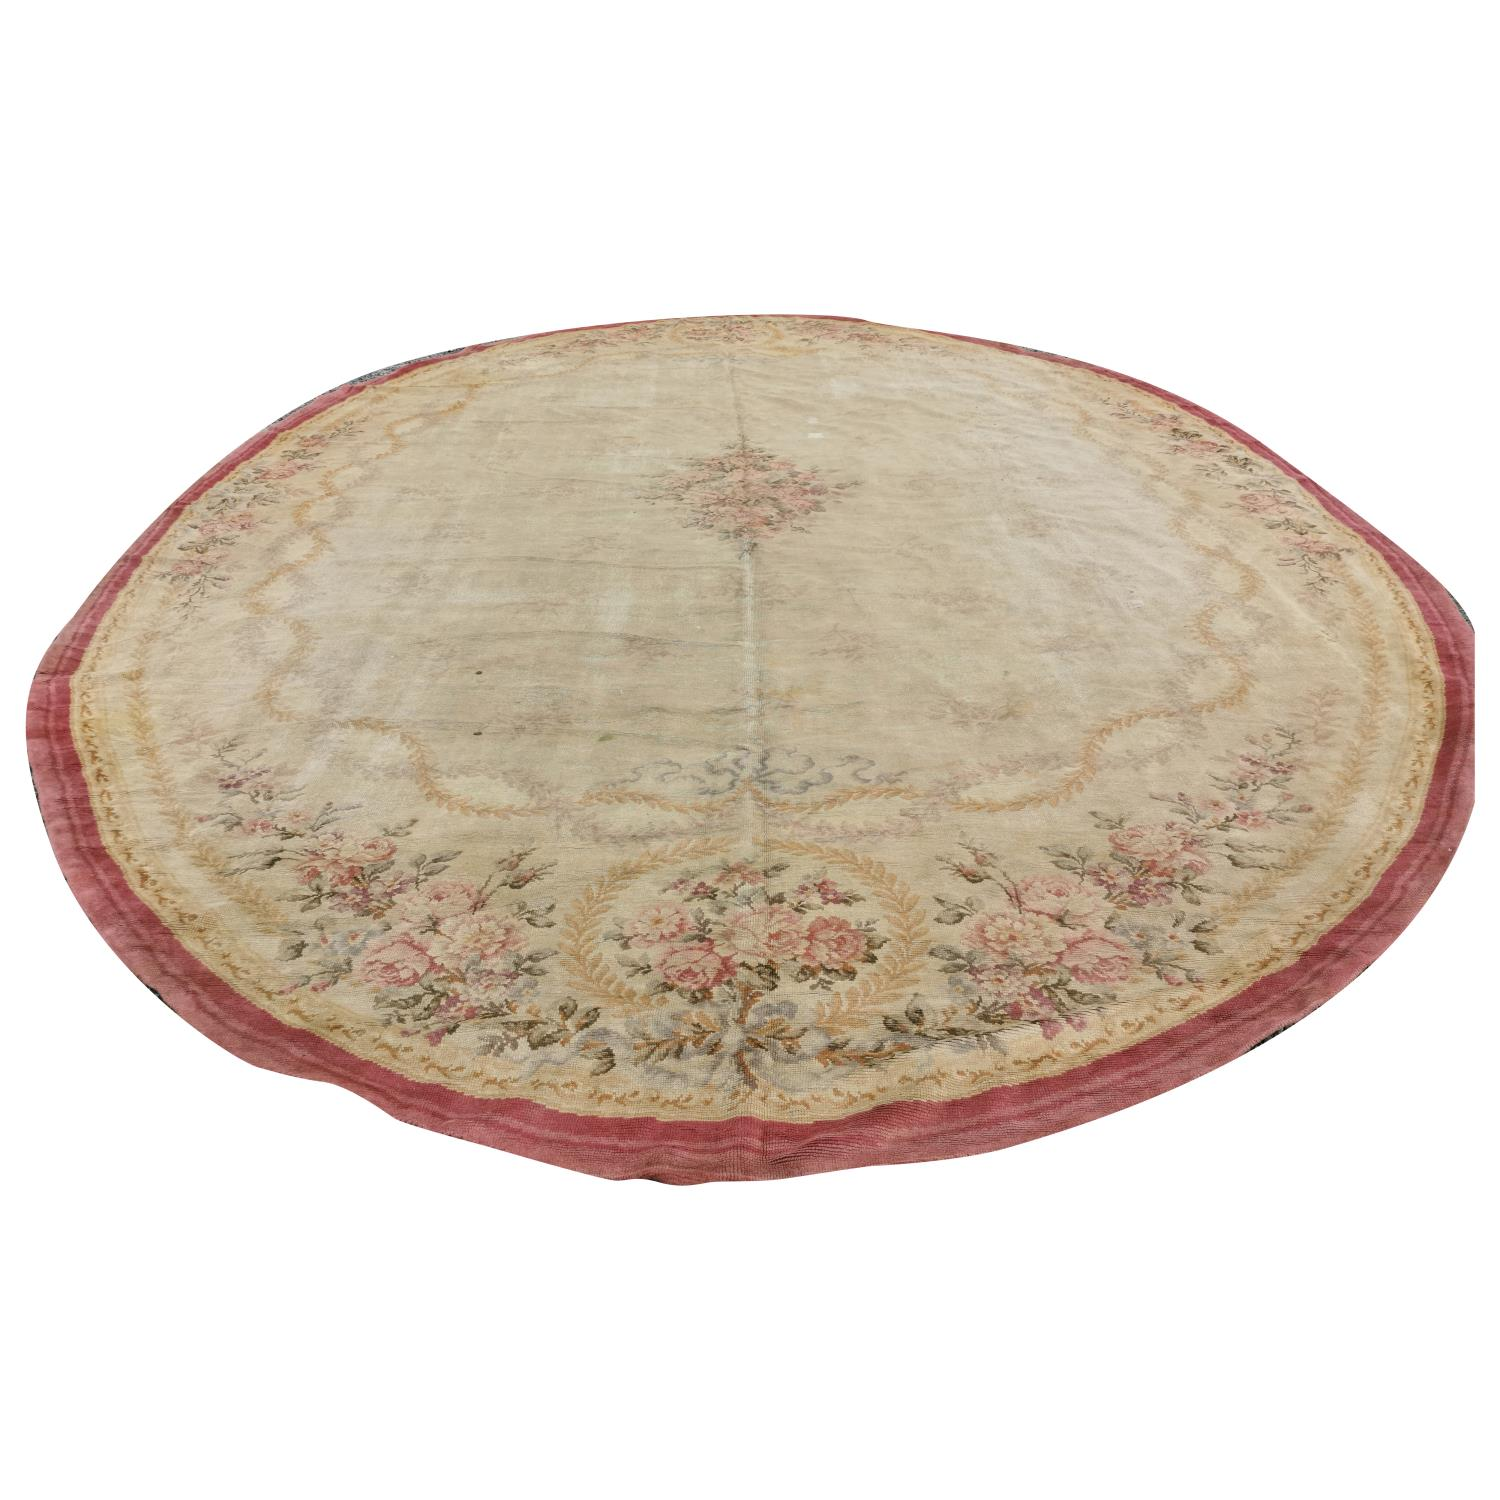 Large early 20th C. hand woven oval carpet.